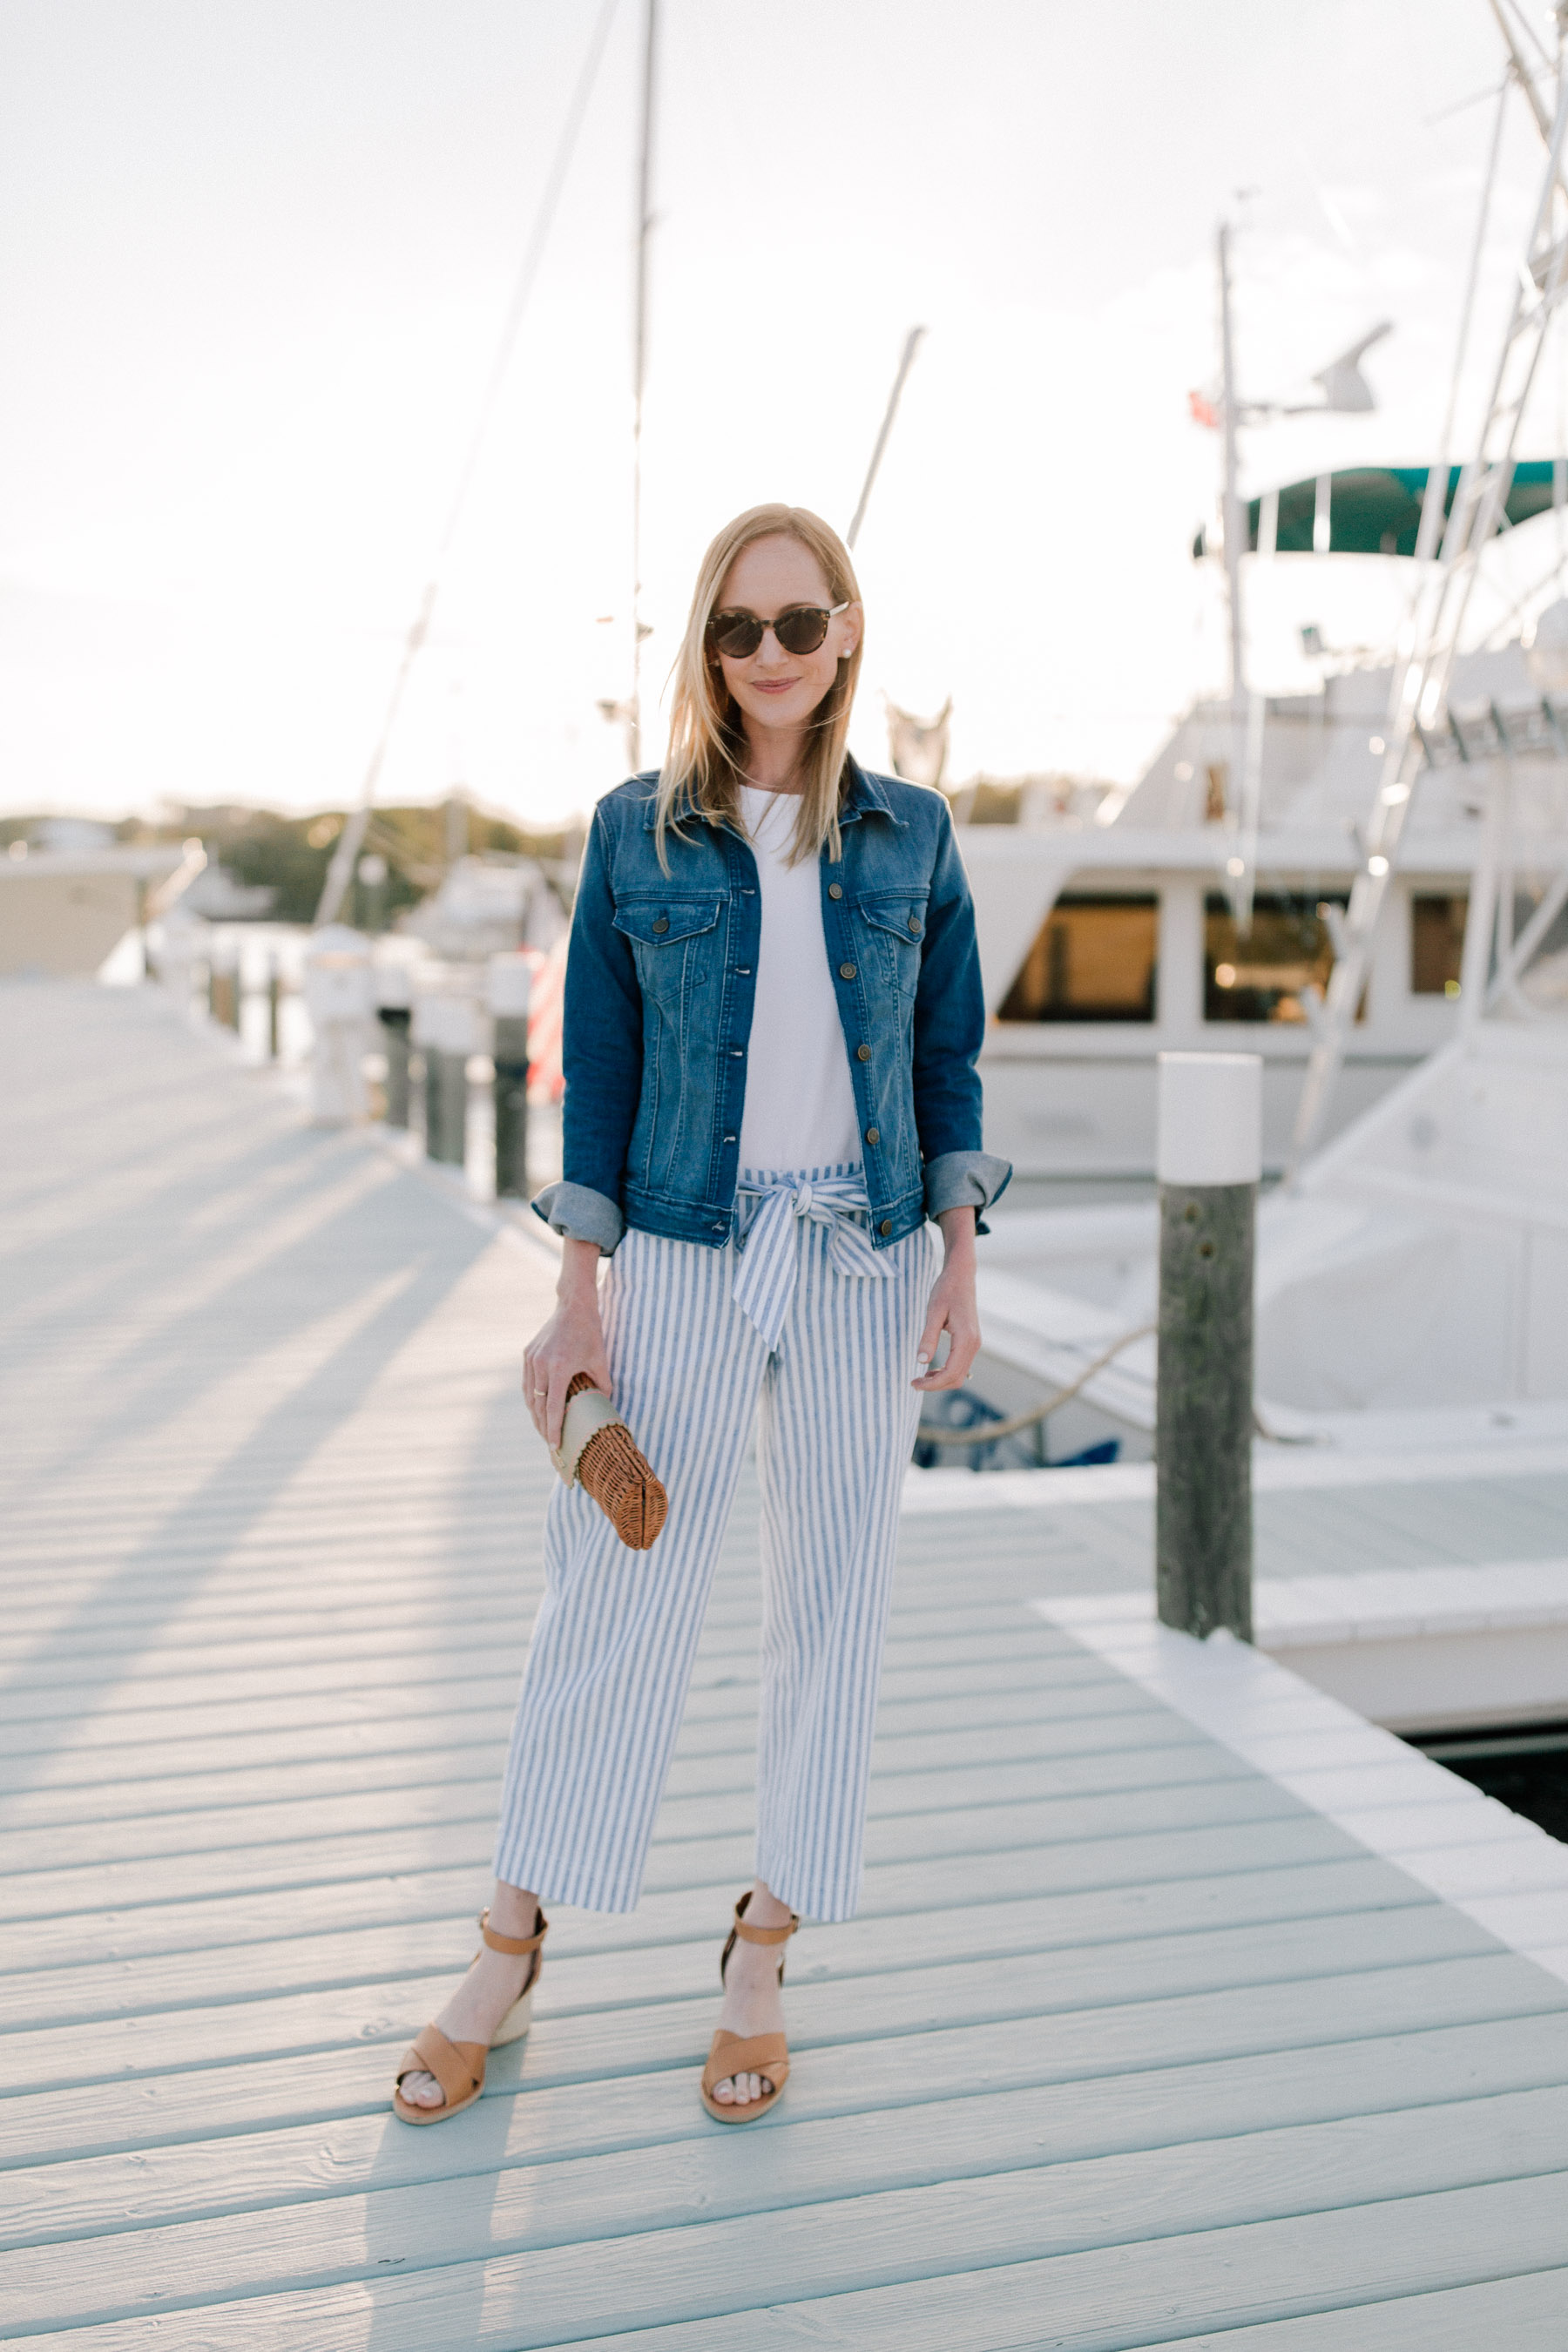 Vineyard Vines Striped Pants Outfit